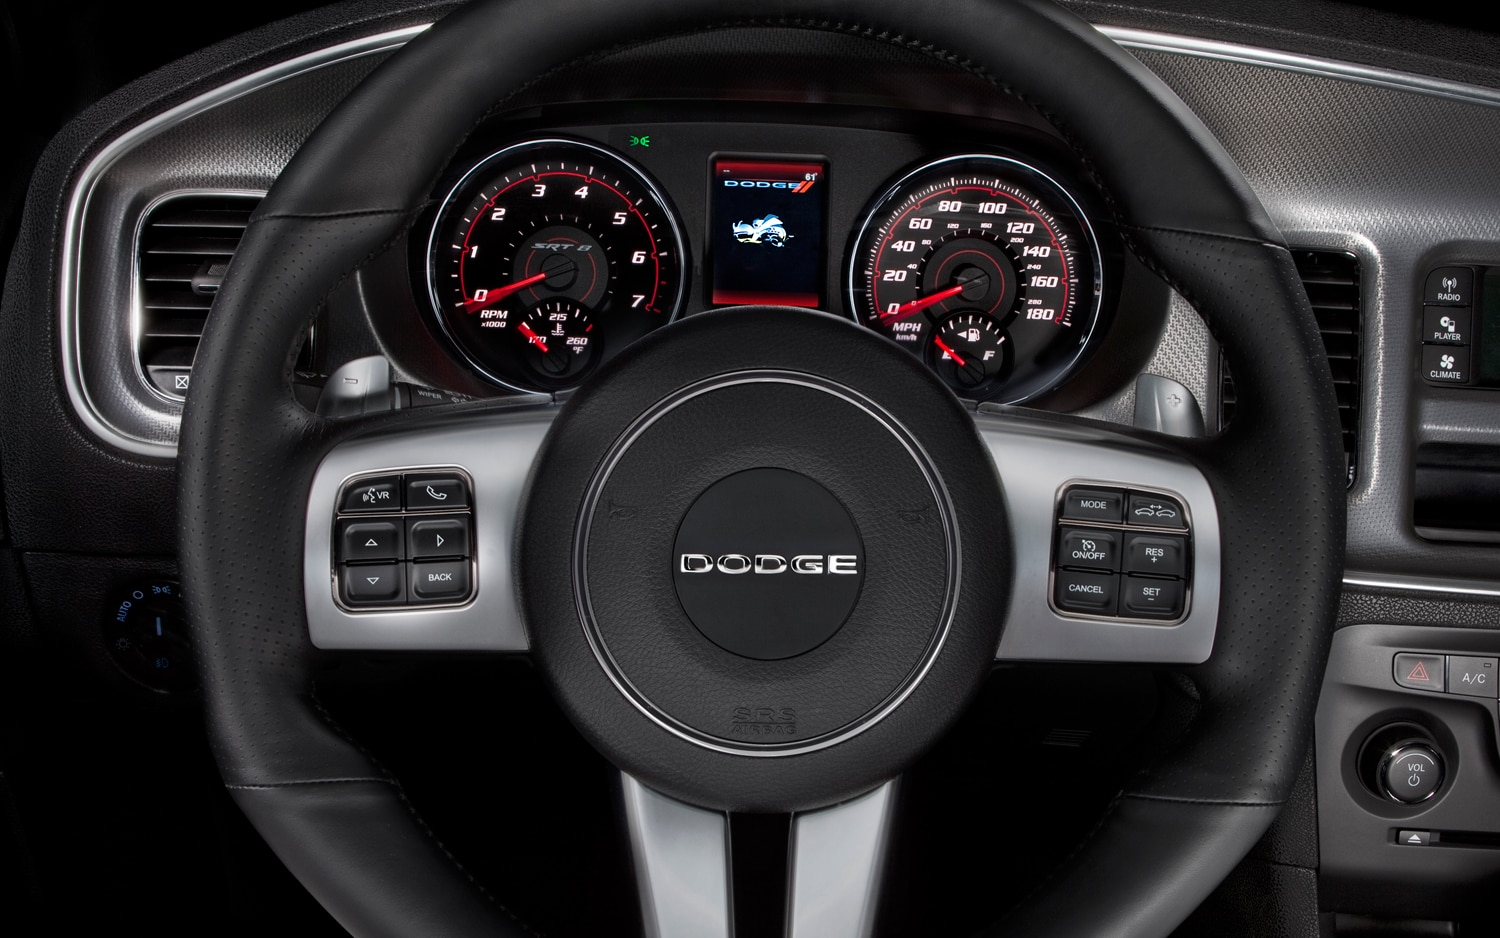 Dodge 08 dodge charger srt8 specs : 2012 Dodge Charger SRT8 Super Bee - Editors' Notebook - Automobile ...